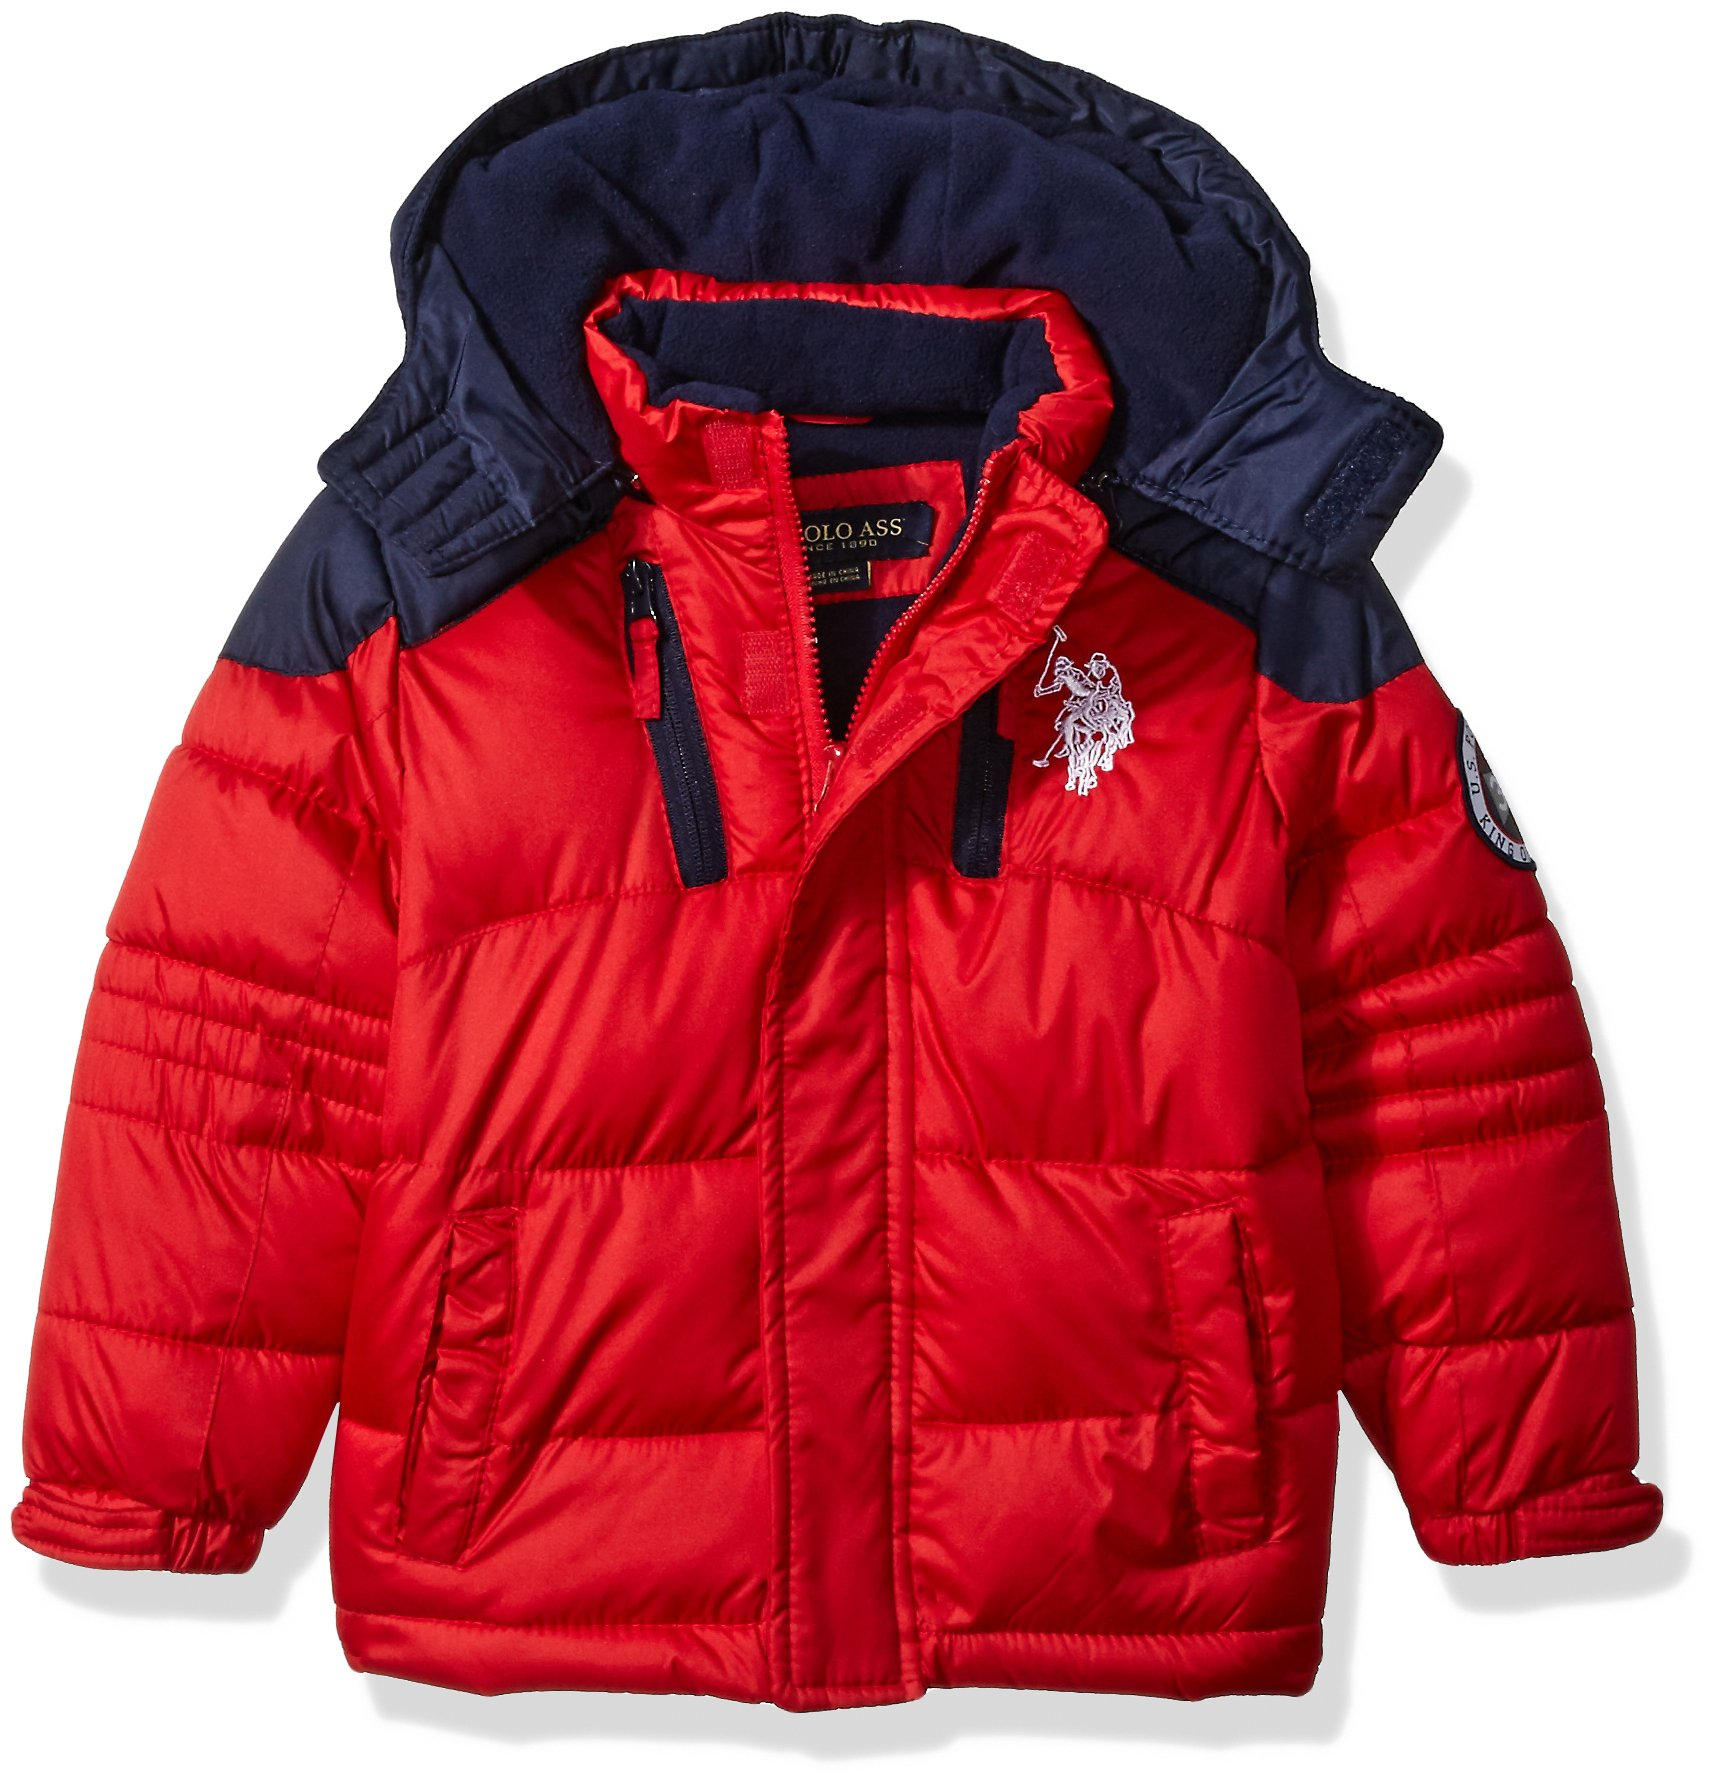 U.S. Polo Assn. Boys' Bubble Jacket (More Styles Available), Winning Red Blue, 4